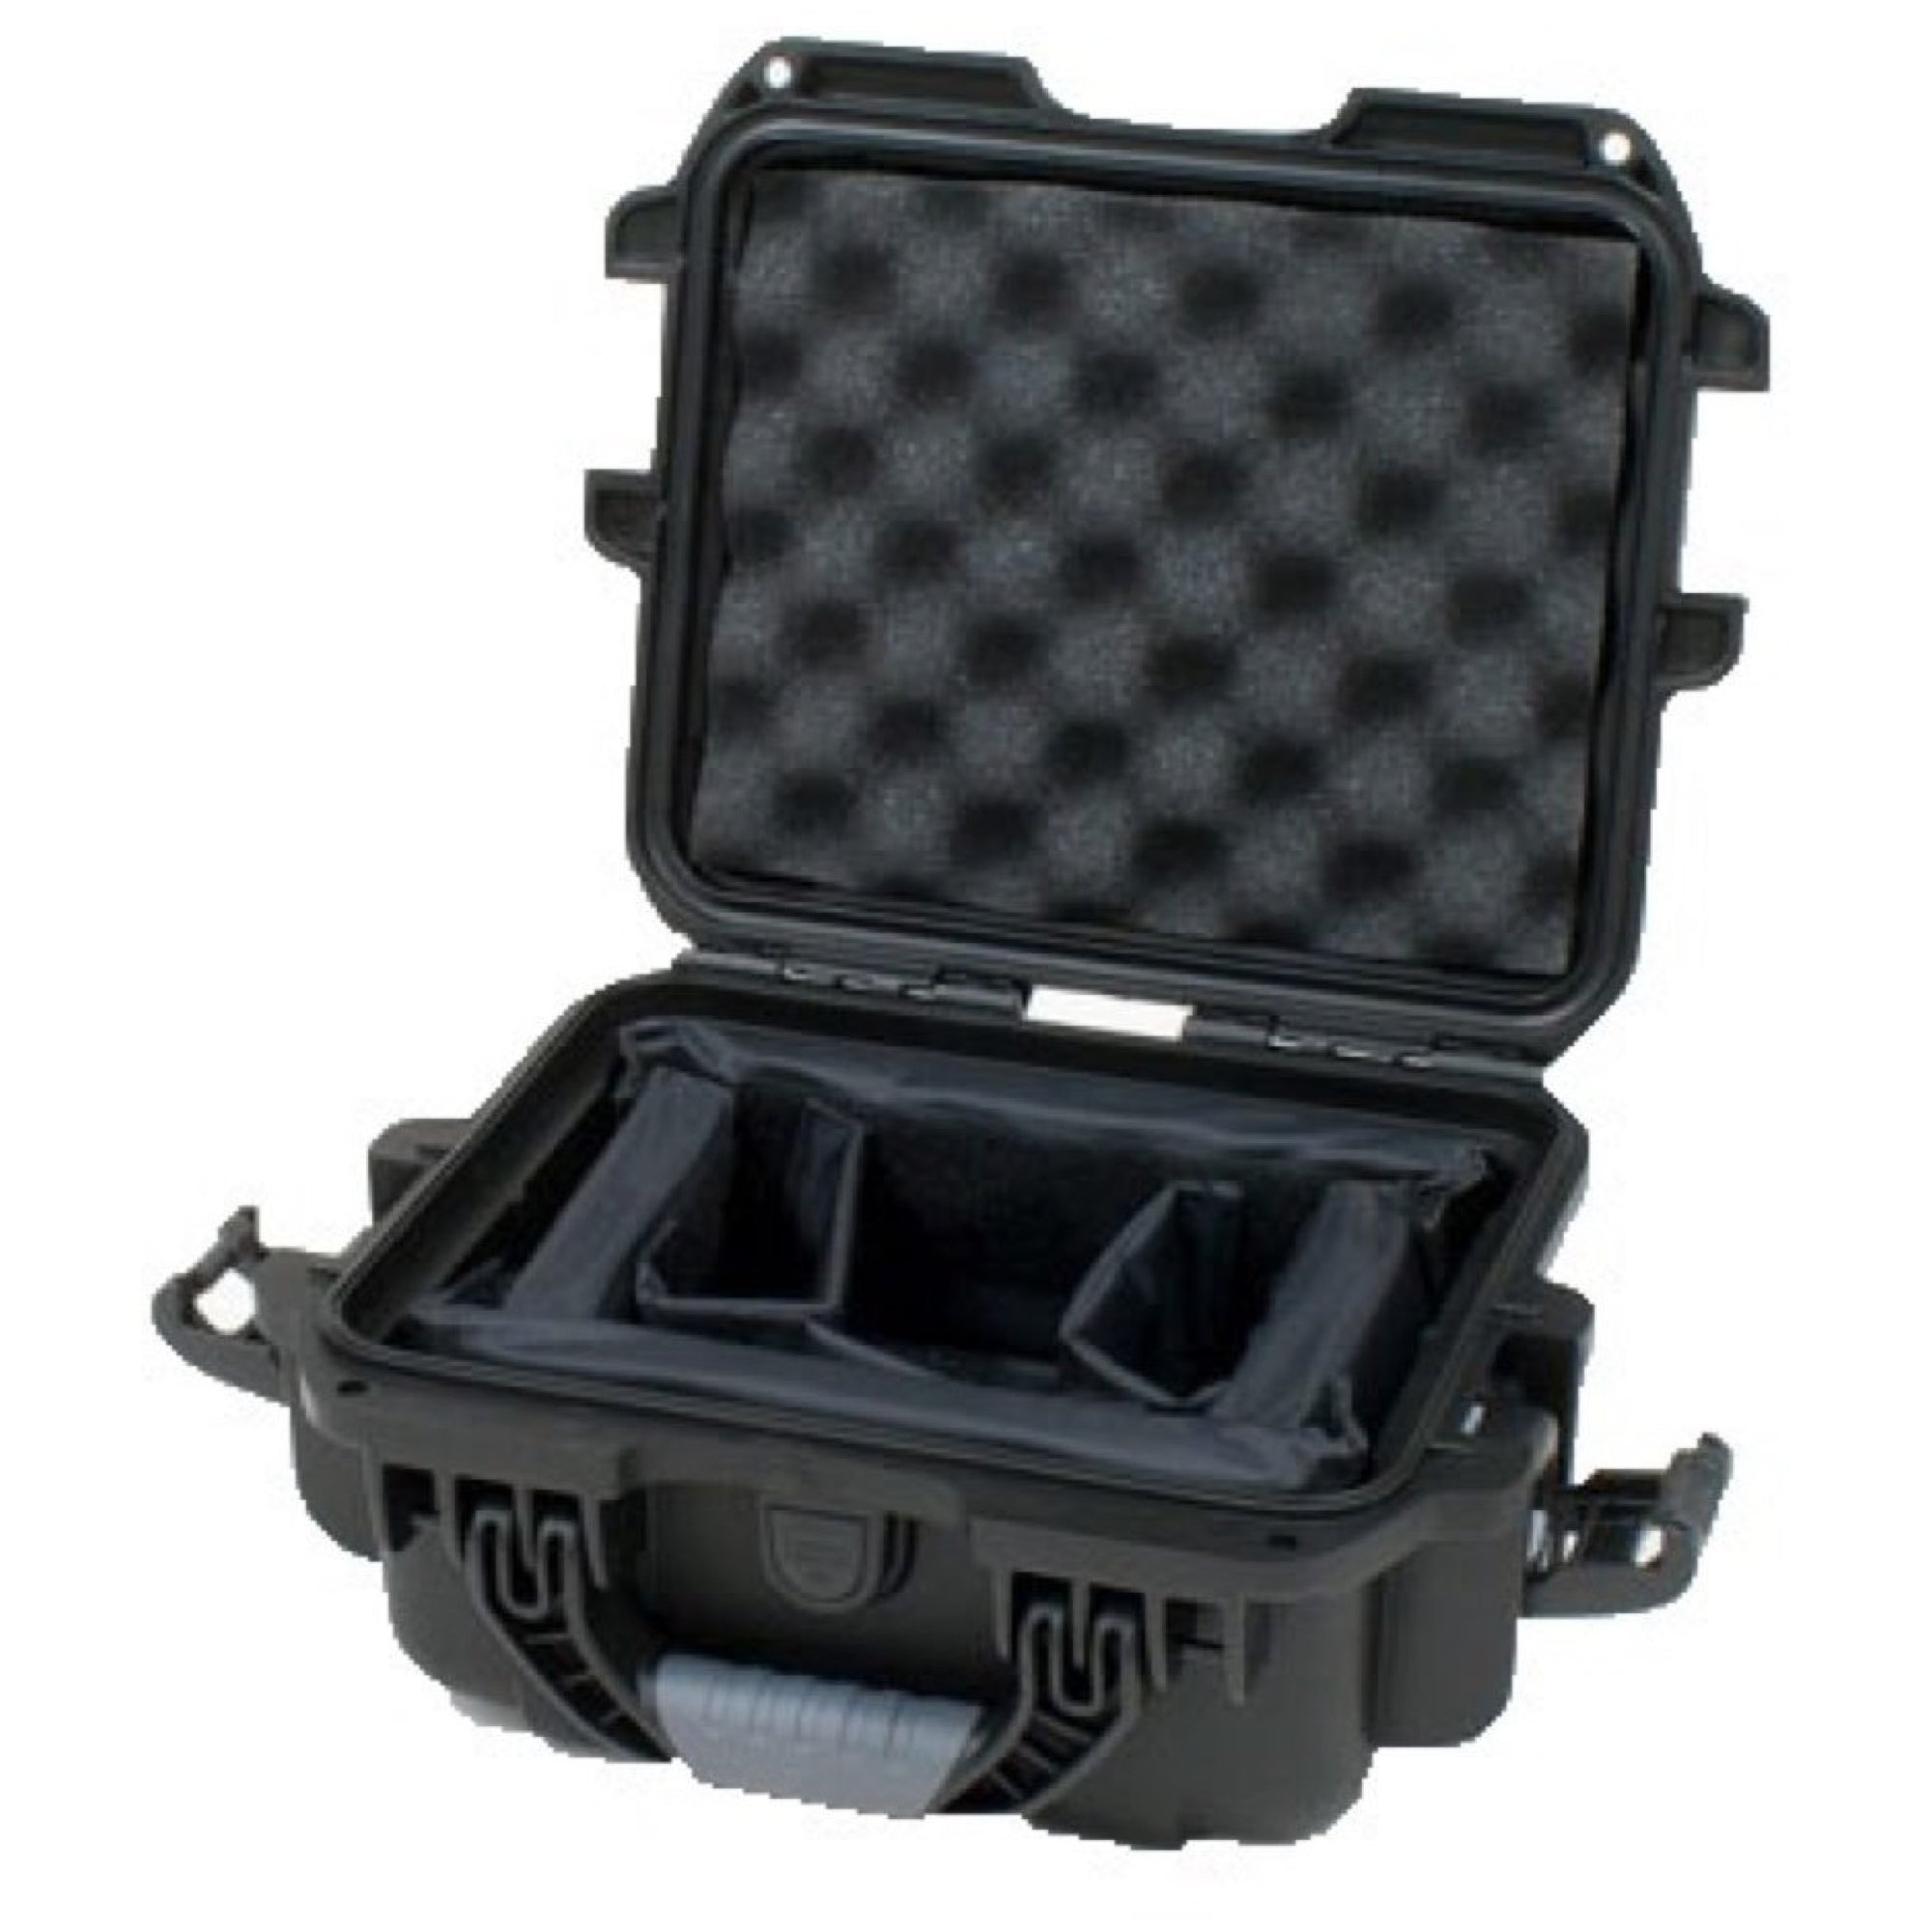 Gator Waterproof Hardshell Utility Case with Dividers, GU-0907-05-WPDV